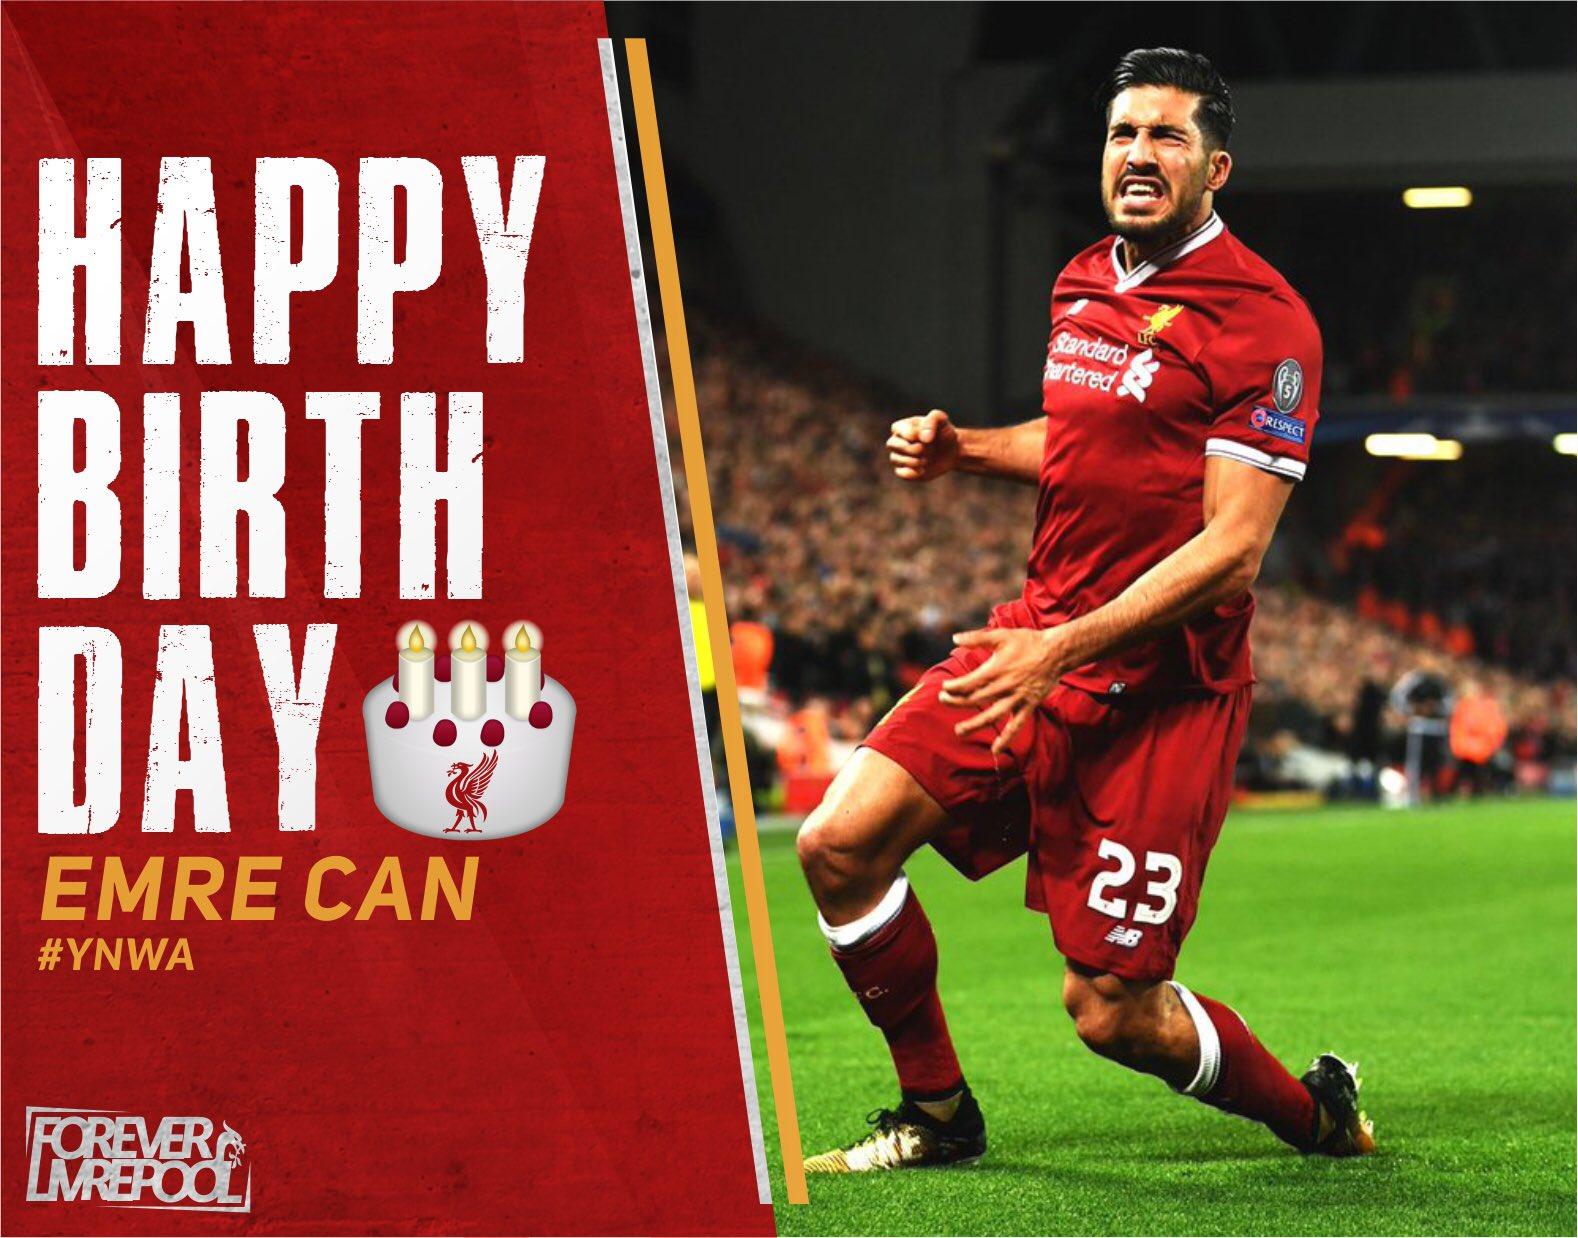 Today, Happy 24th Birthday Emre Can   Wish you all the best, Bro